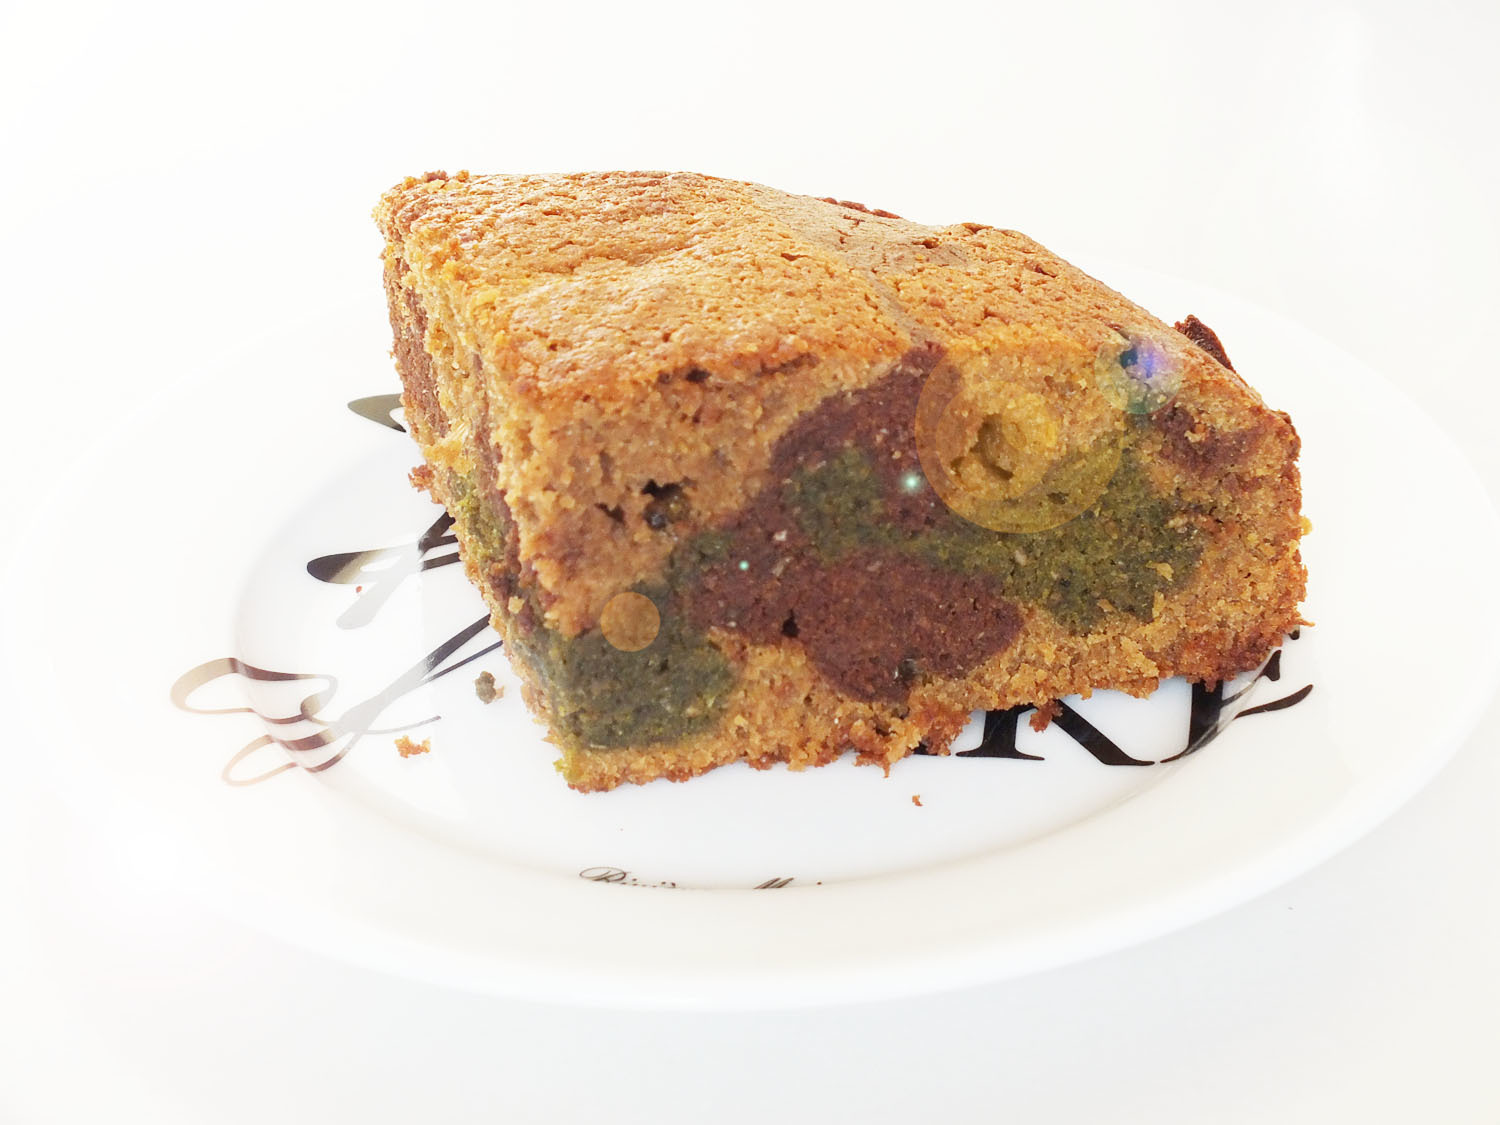 Recept: Gezonde Superfoods cake!